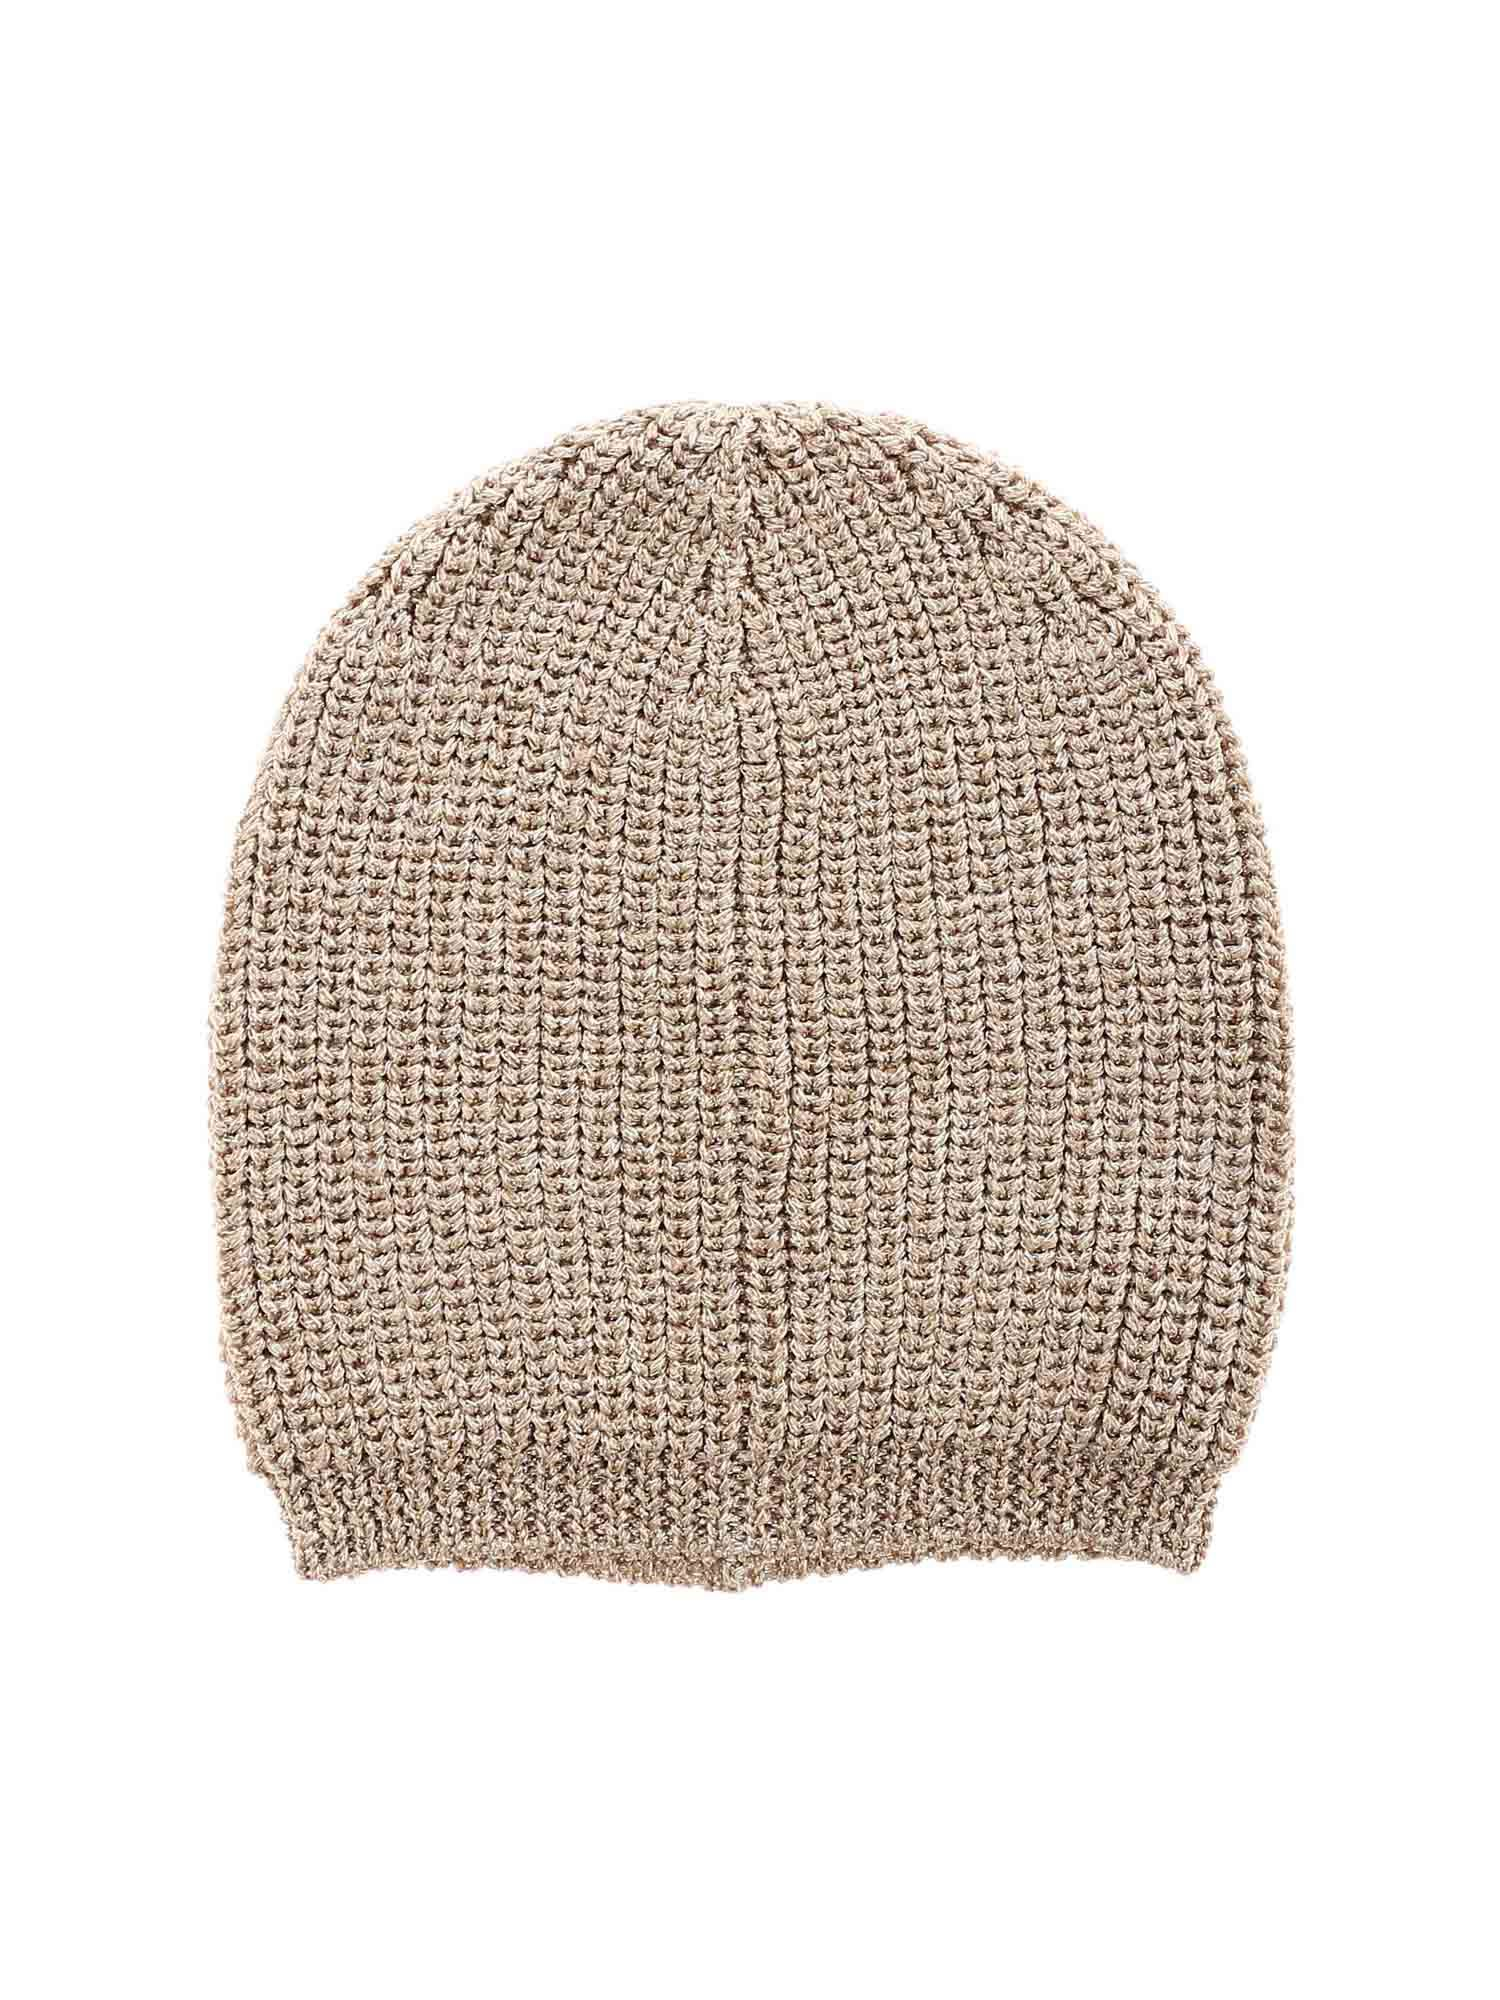 Dondup Beanies GOLDEN BEANIE FEATURING LAMÉ DETAIL